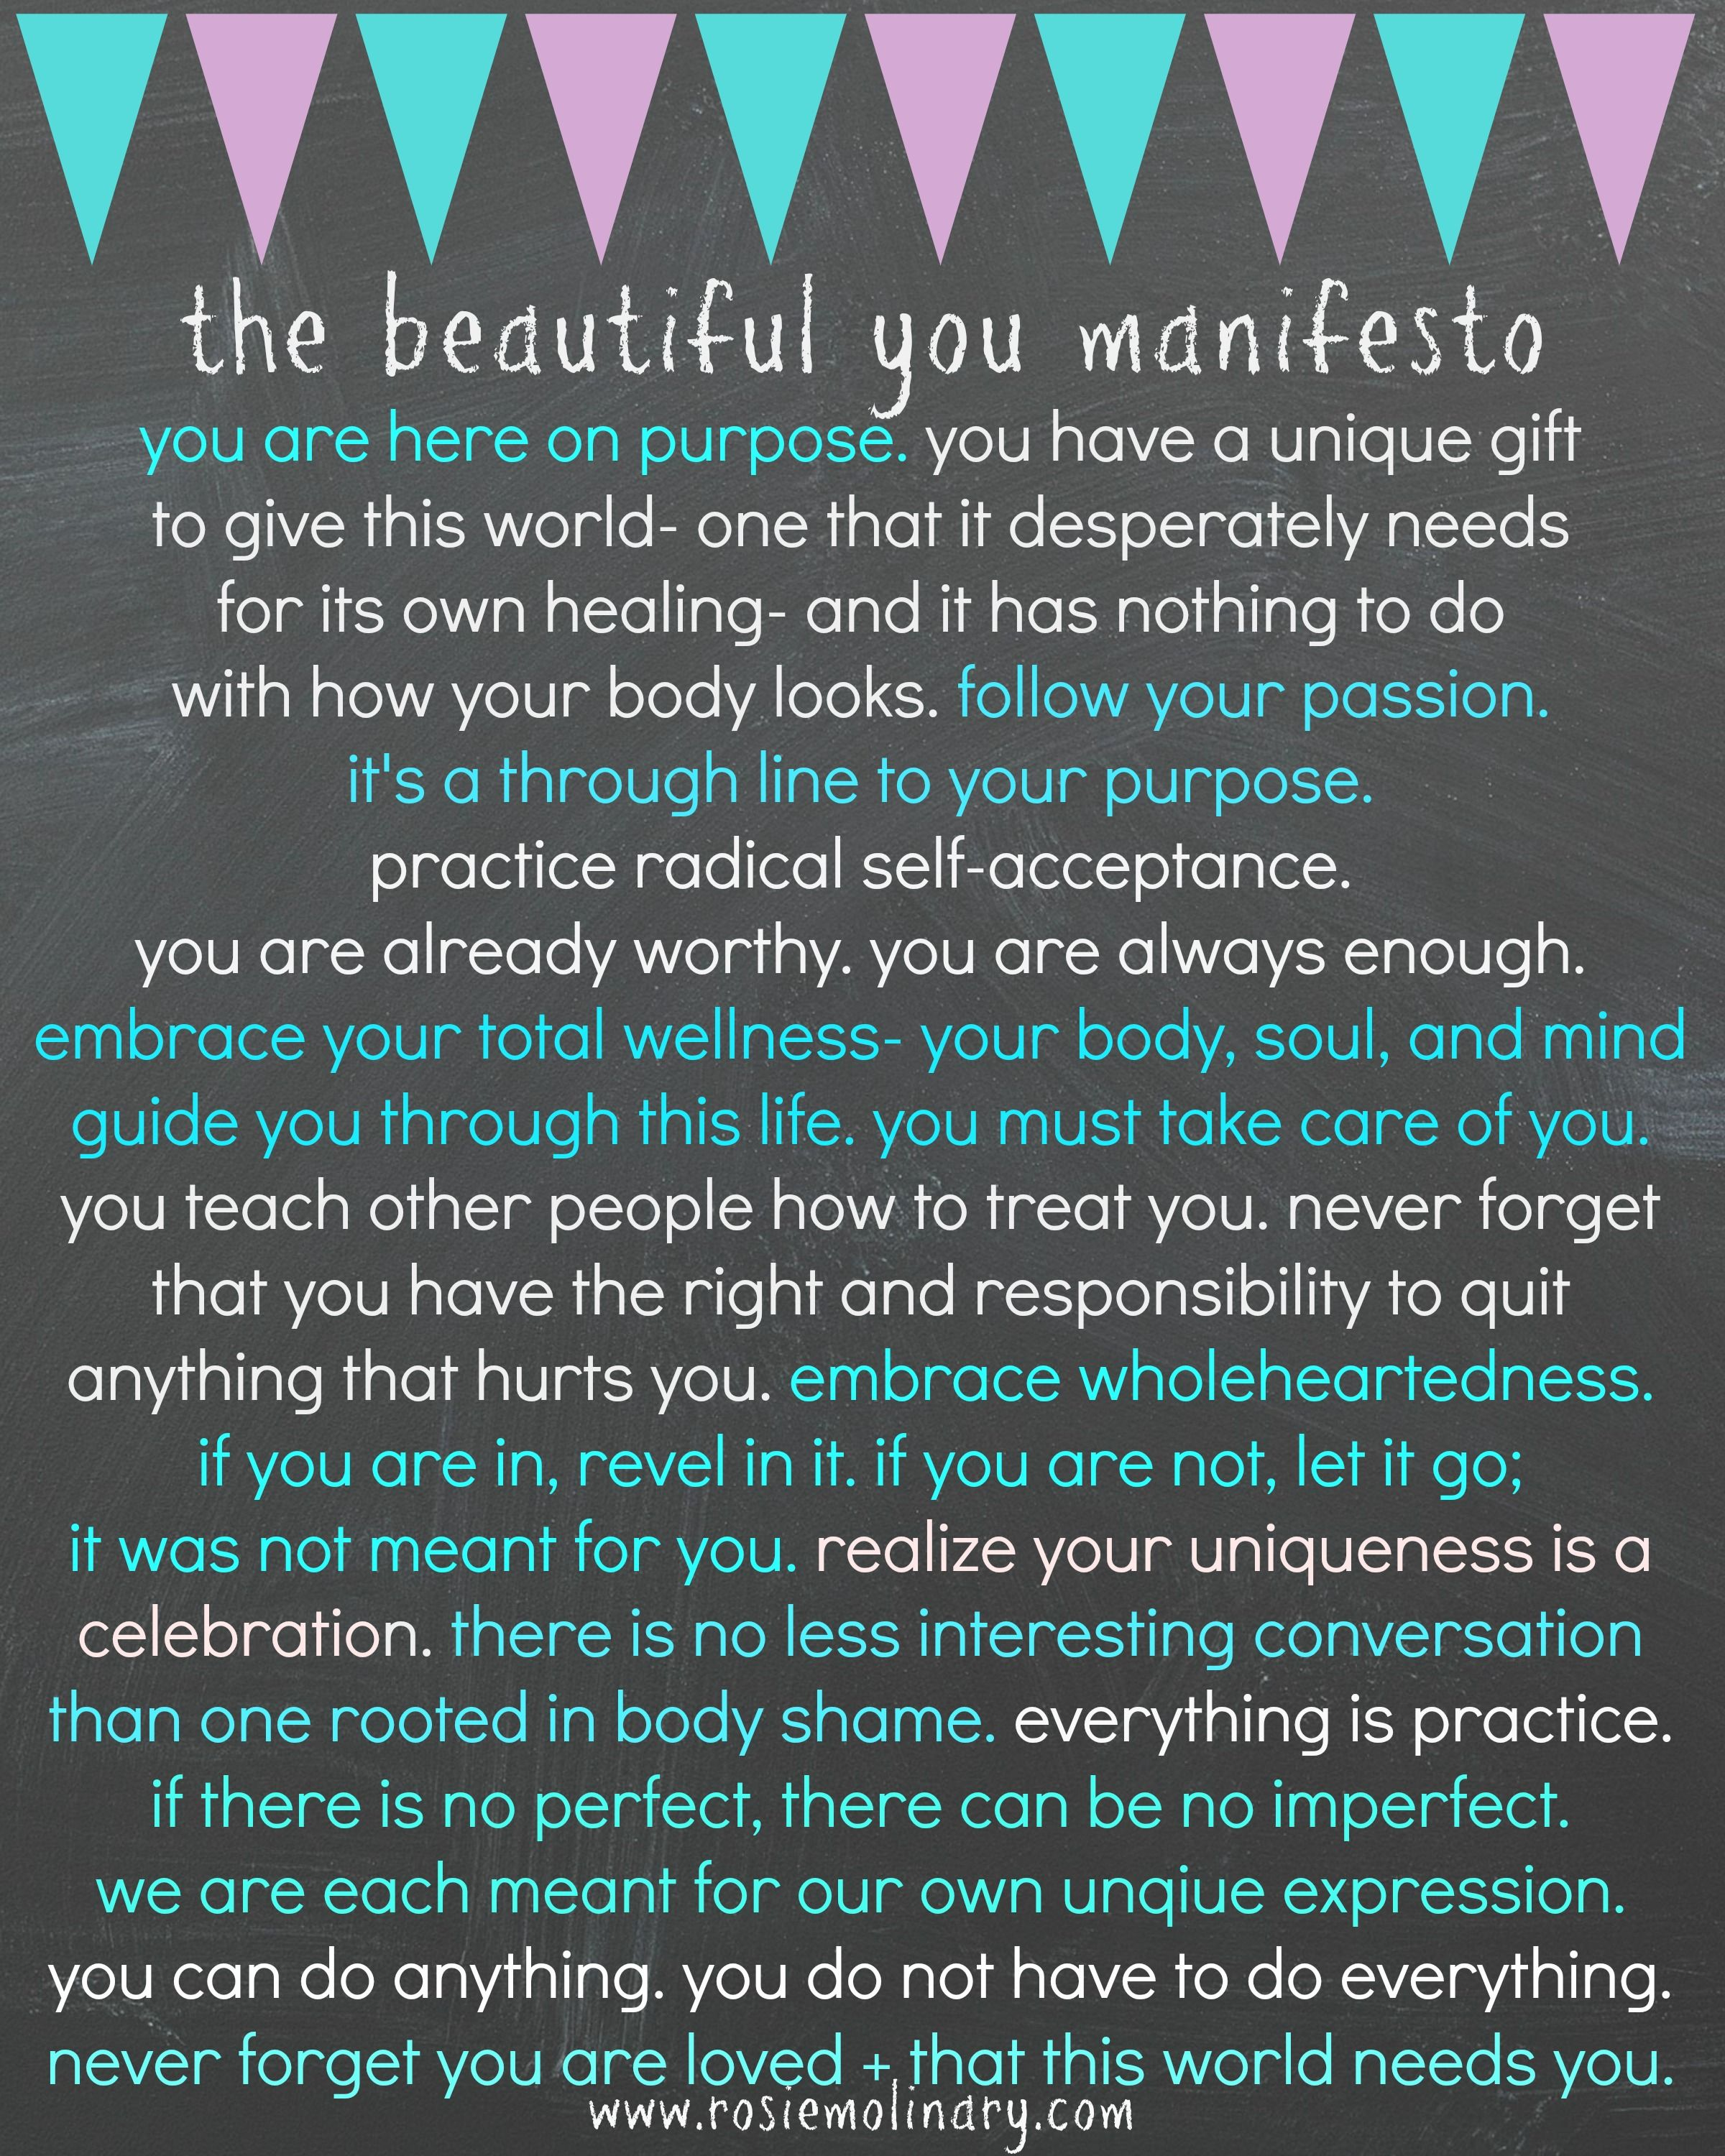 Finals Quotes Simple Beautiful You Manifesto Final  True Wisdom  Pinterest  Finals . Inspiration Design